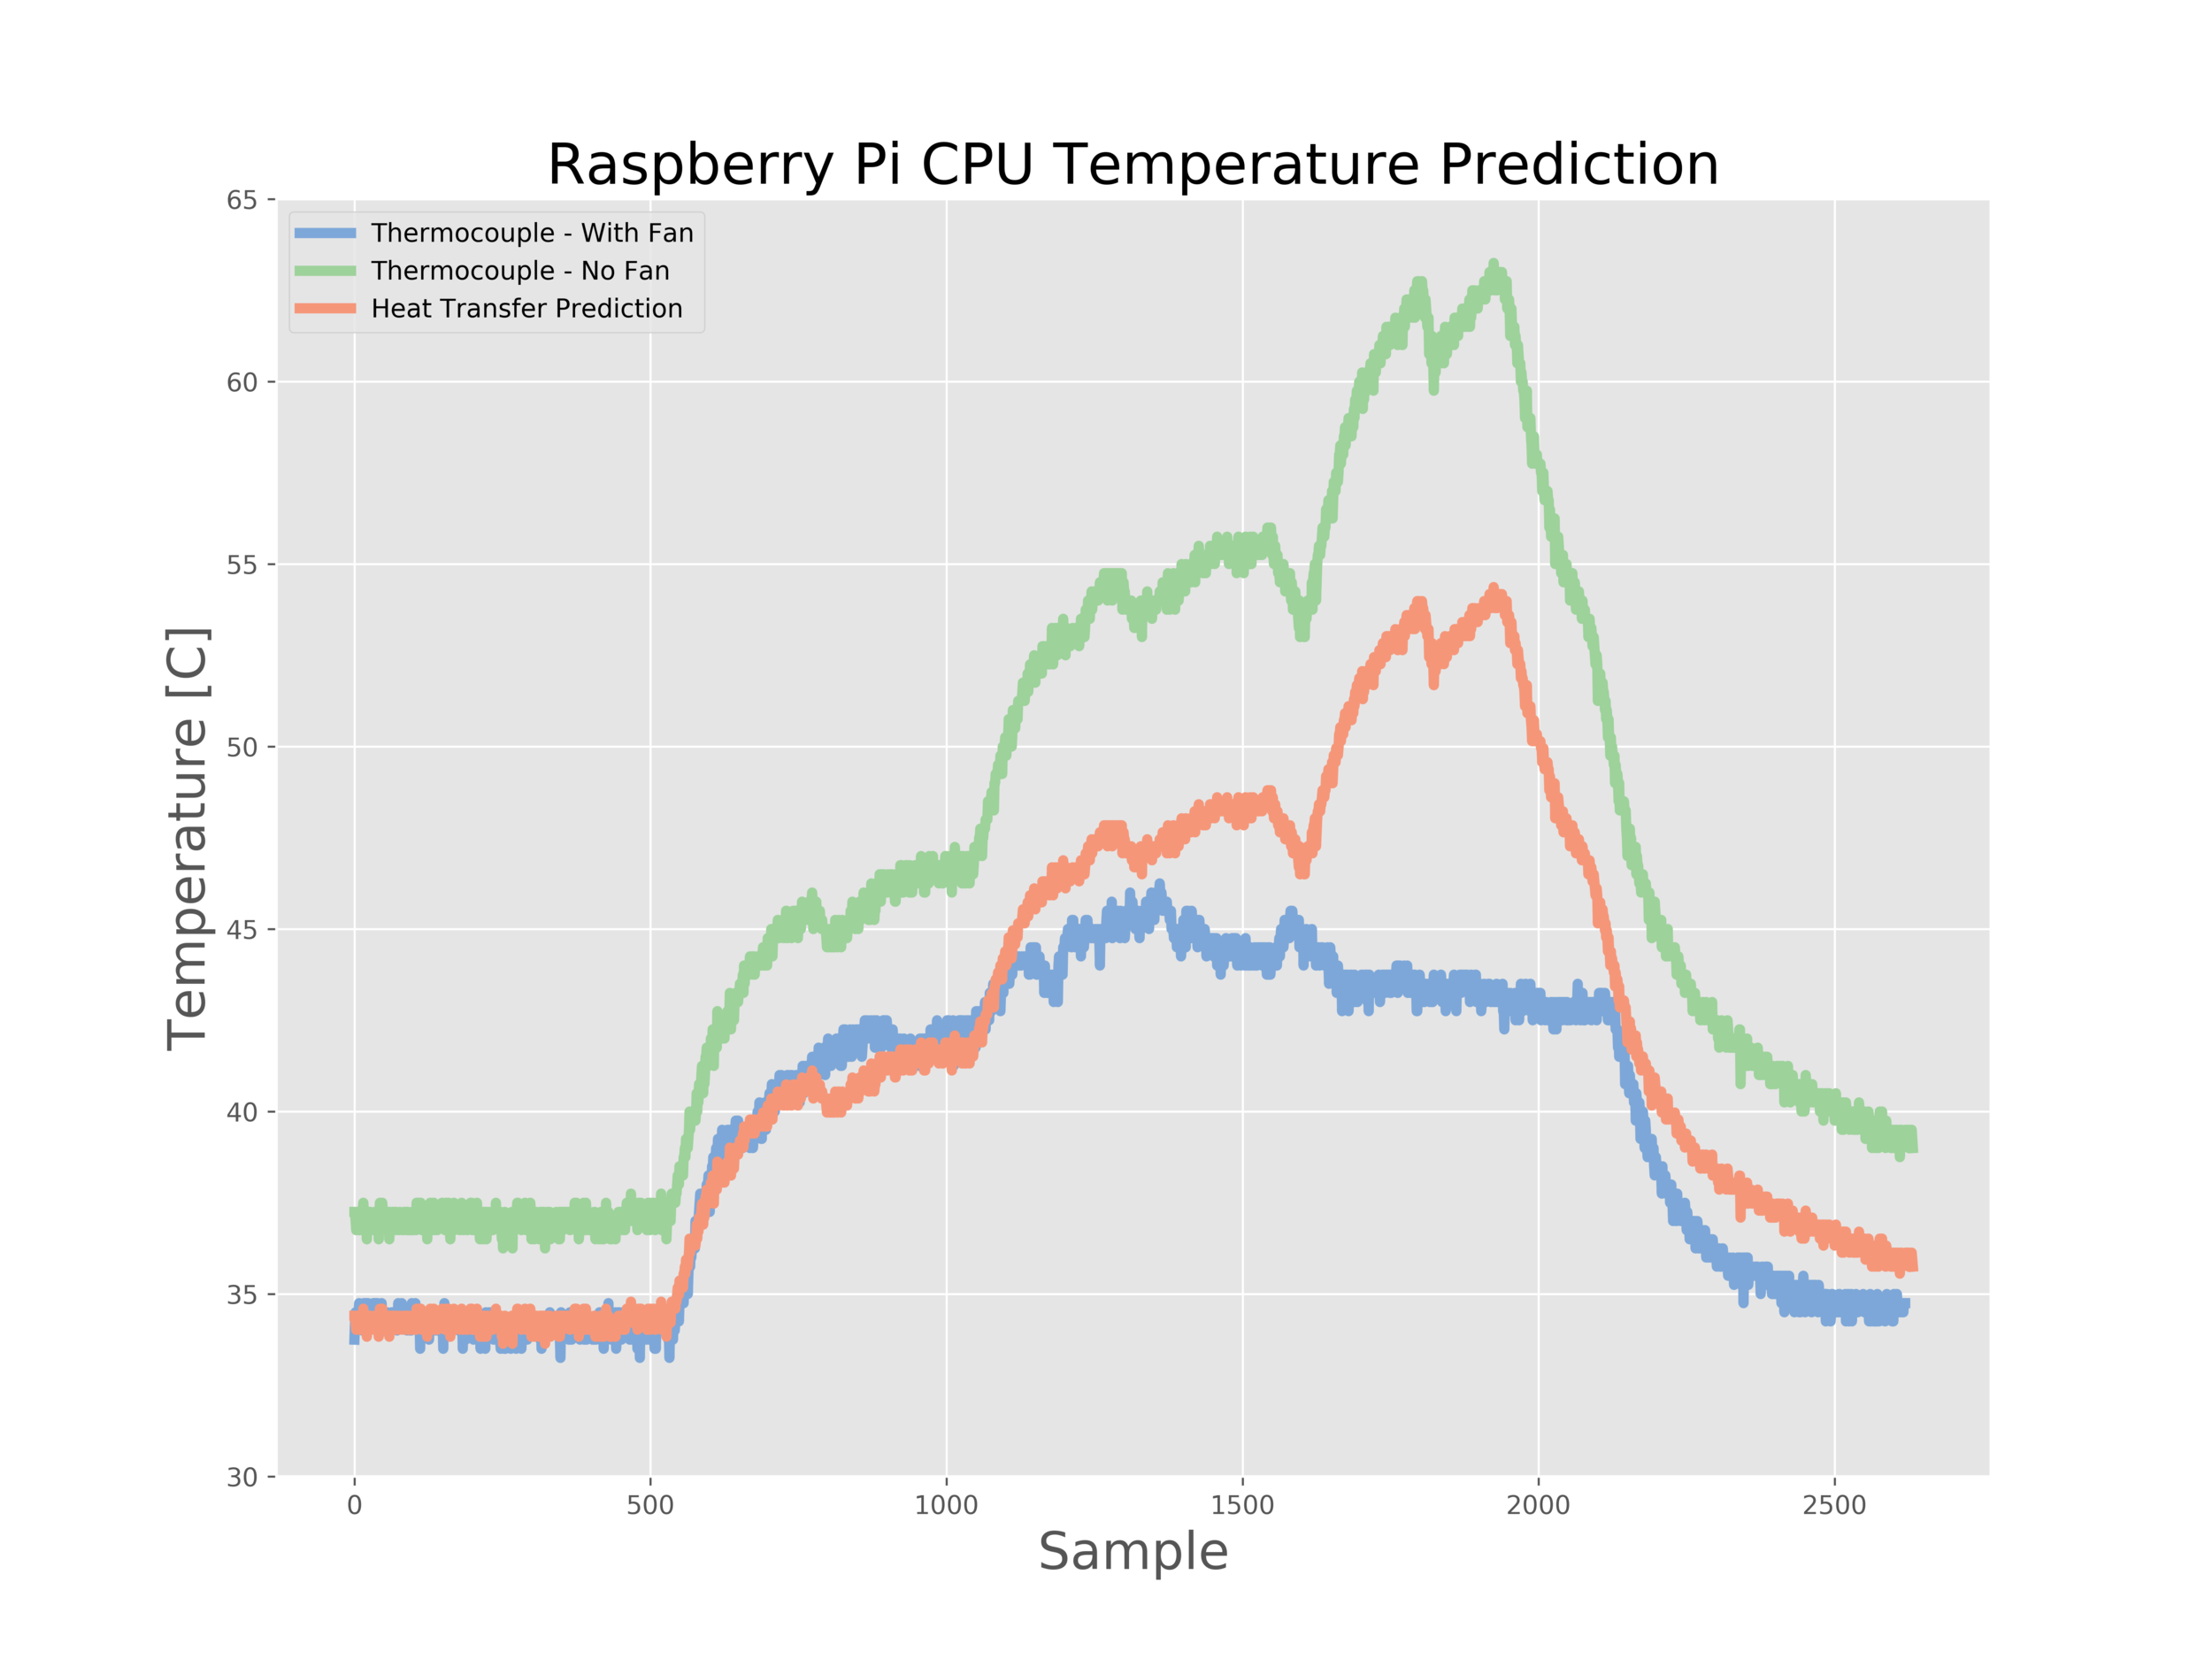 Figure 6:  Using the heat transfer approach, the predicted performance of the fan is closely approximated for the lower power states, but struggles at the higher states. I believe this is because the Raspberry Pi is operating in such a way that it is able to optimize the CPU after being cooled by the fan. This would create the lower temperature shown in the Blue. My prediction (in Orange) follows the Green line because it is predicted from that data. I believe if the RPi was running identically on both runs, the Blue line would mimic the Orange, however, in this case it appears something else was happening with the CPU. The positive observation is that the return back to low power (the tail end of the data) follows nicely between Orange and Blue, indicating good agreement between the predicted heat transfer performance of the fan and the actual data taken from the fan-cooled CPU.